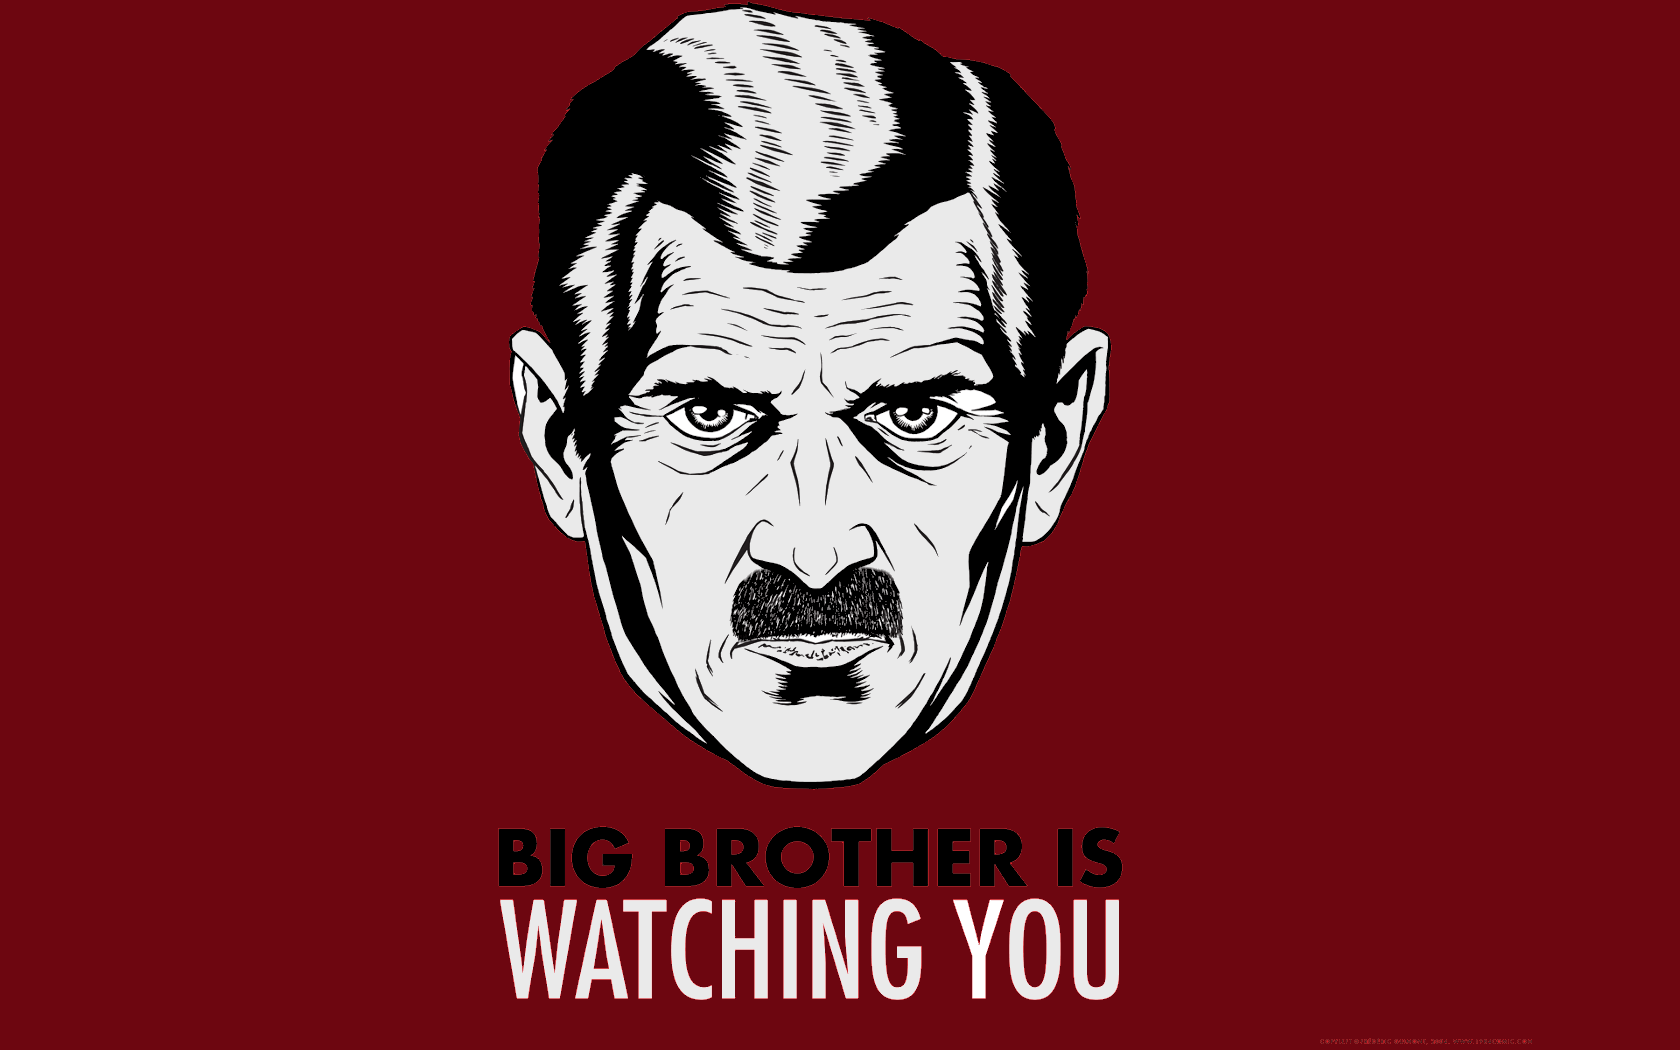 big-brother-is-watching-you-94815124855